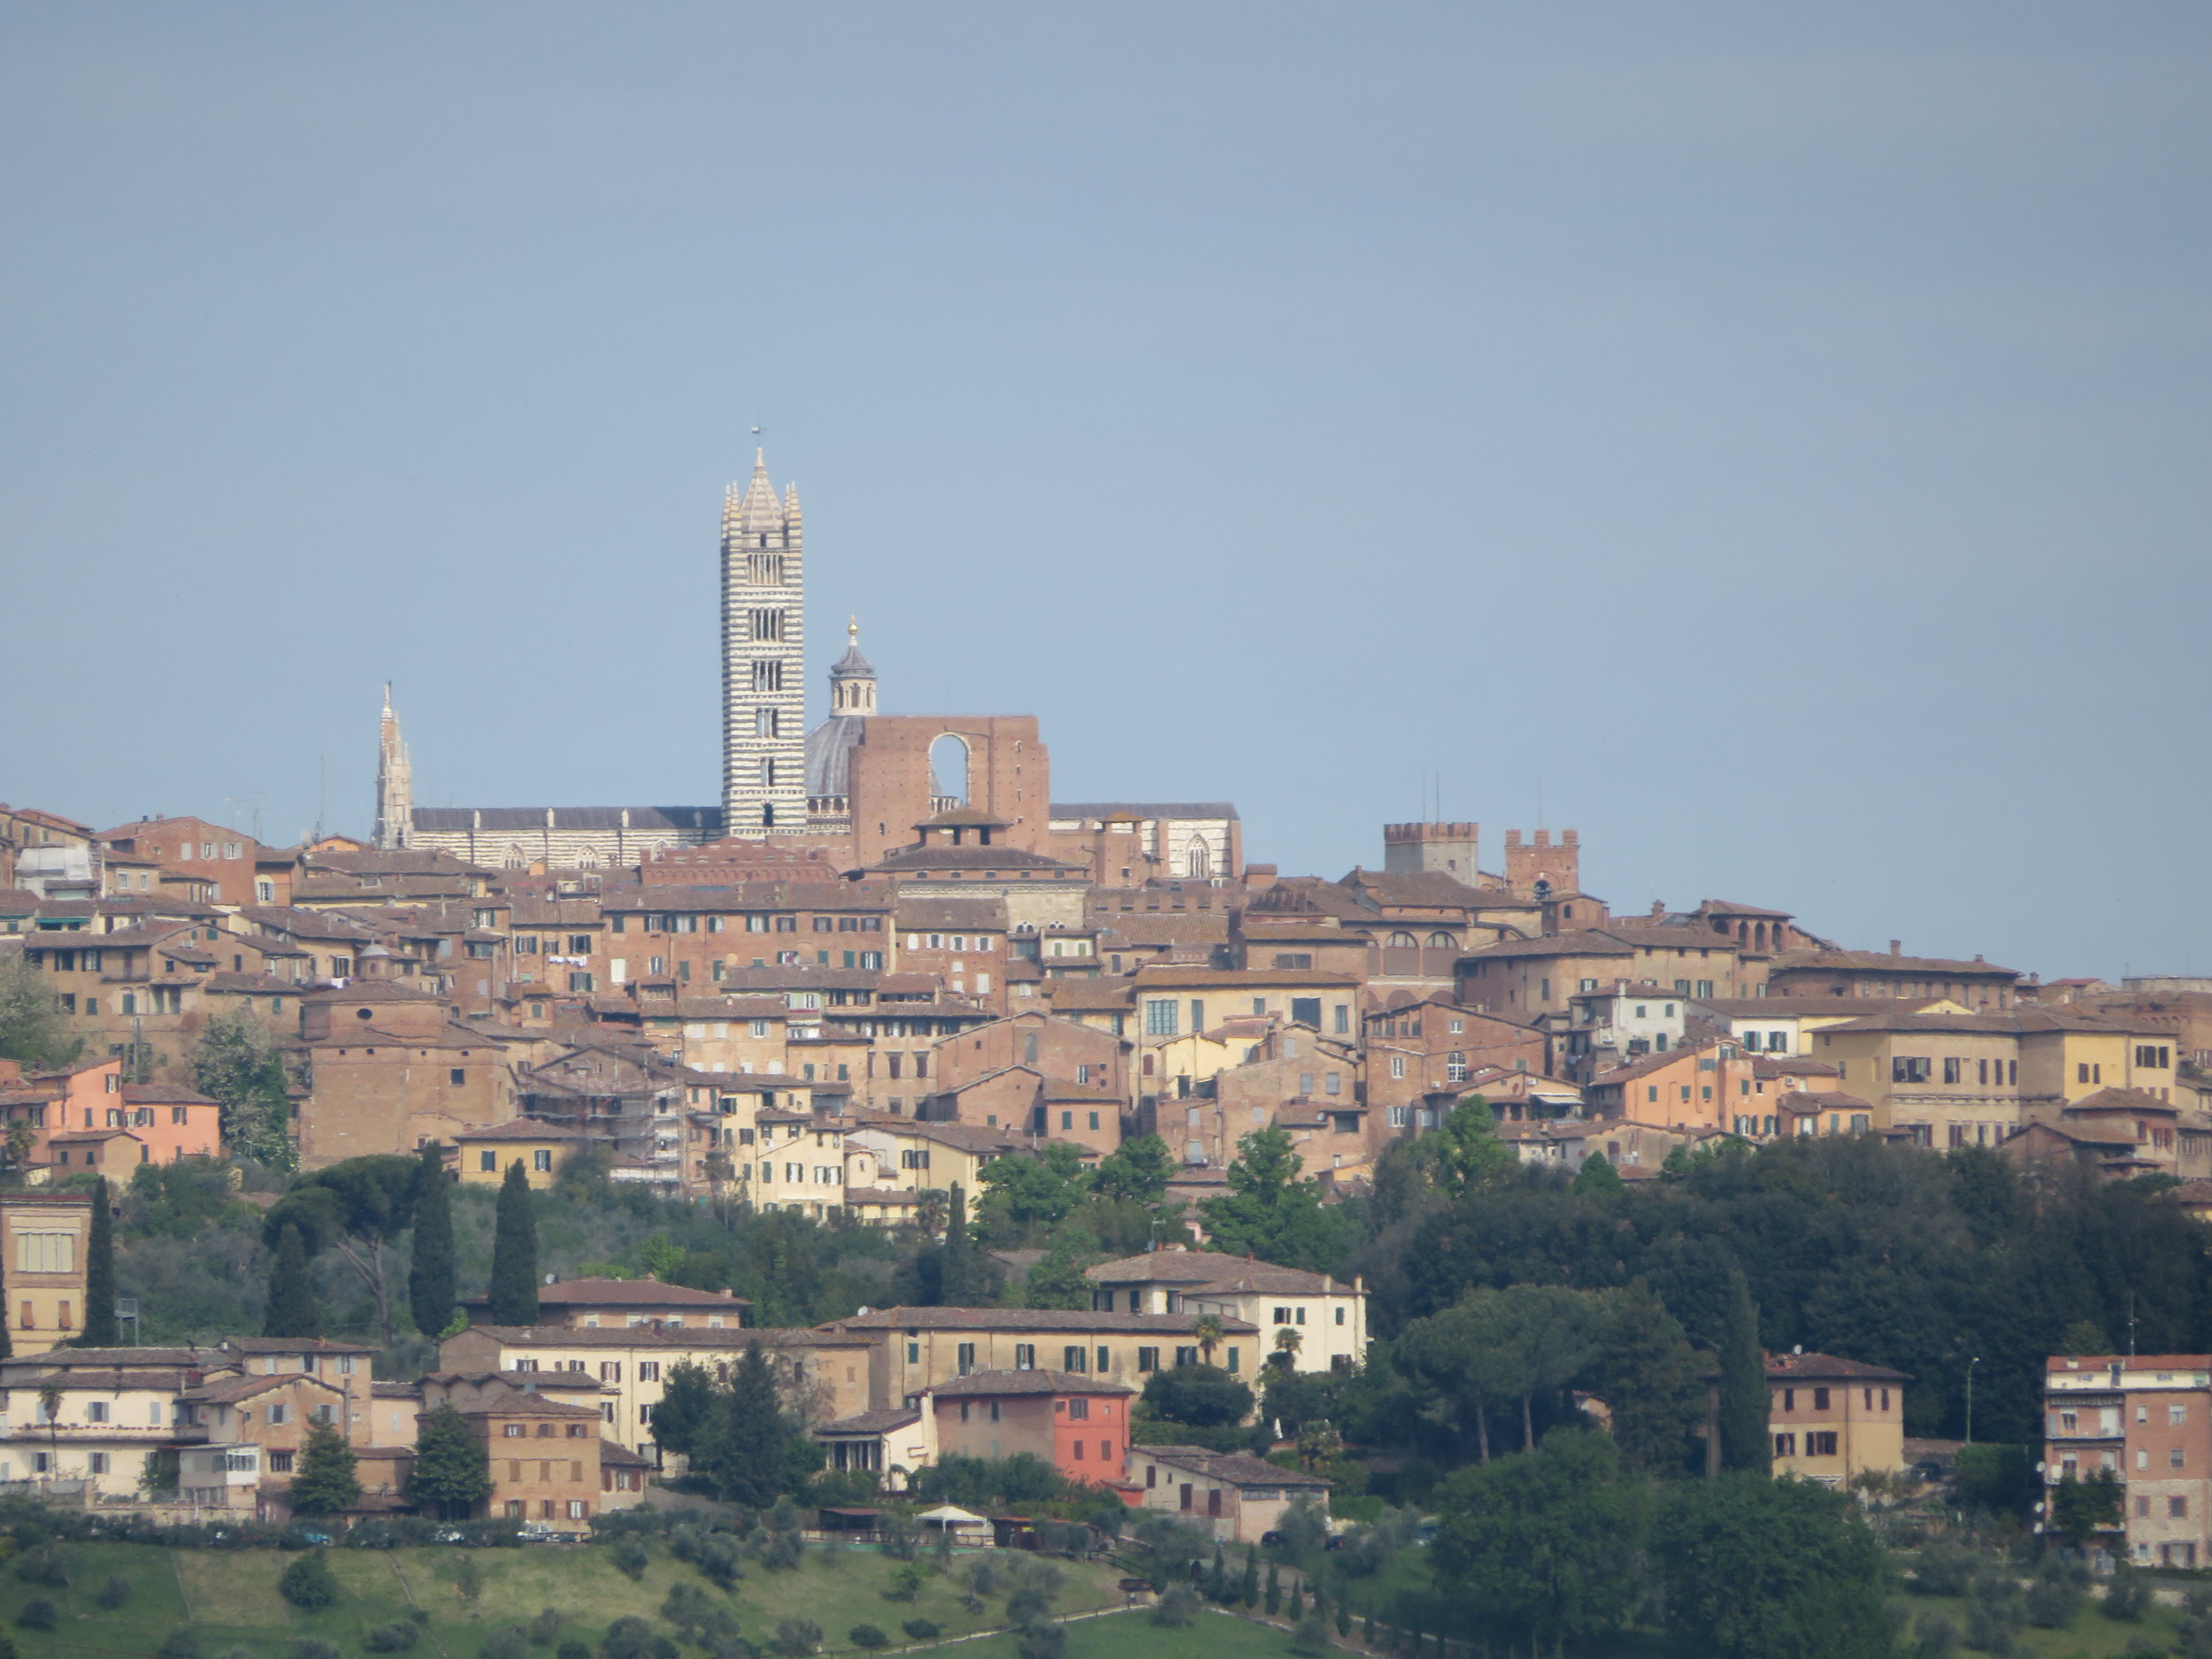 Views of the Siena skyline